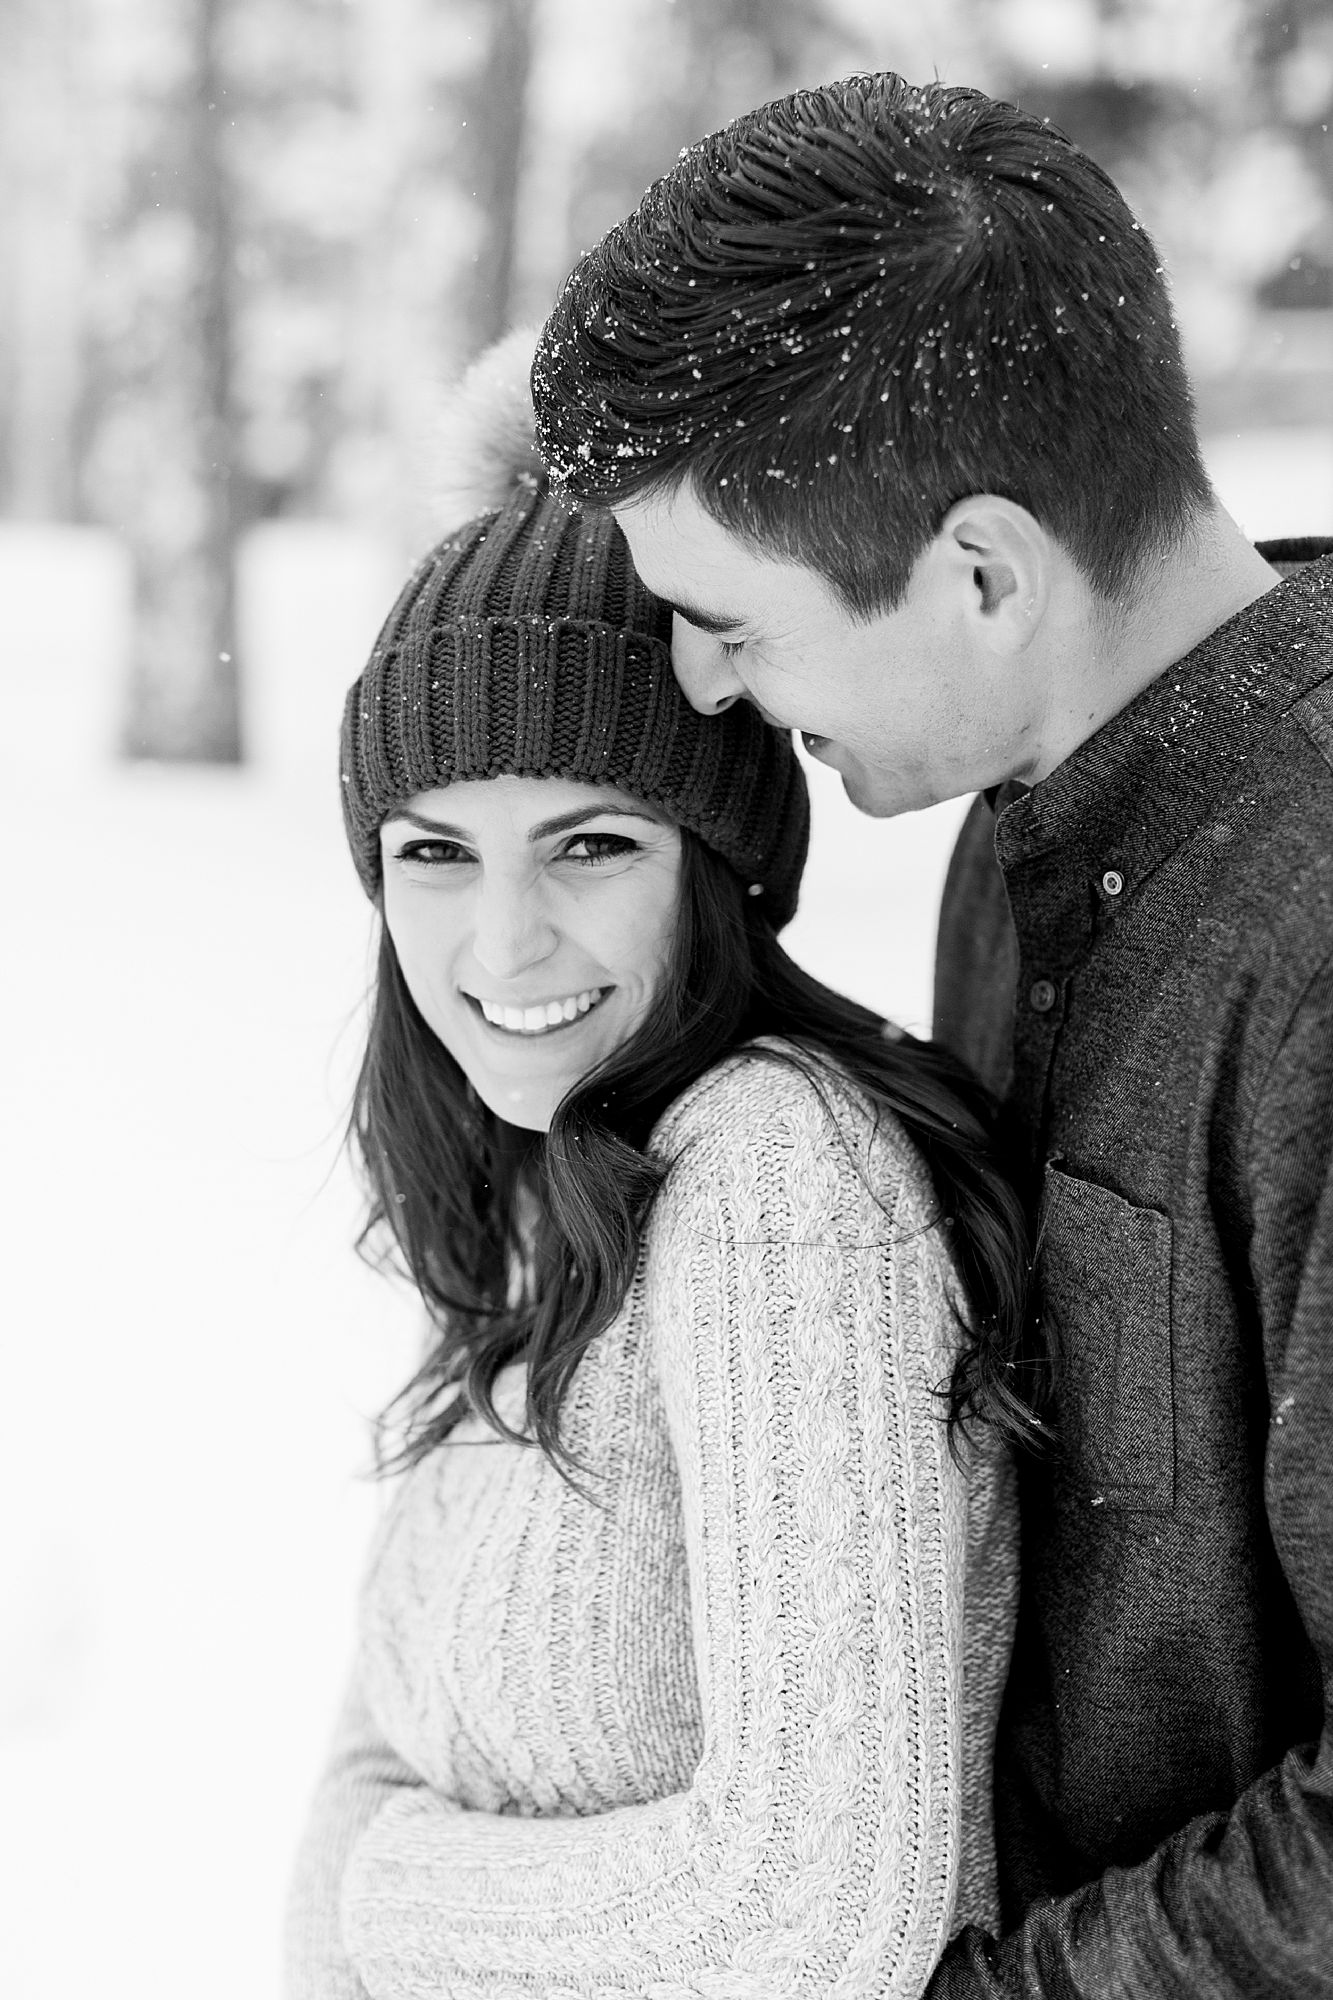 Snowy Tahoe Engagement Session - Alex and Kevin - Ashley Baumgartner - Tahoe Engagement Session - Tahoe Wedding Photographer - Tahoe Engagement Photos - Snow Engagement Photos_0008.jpg